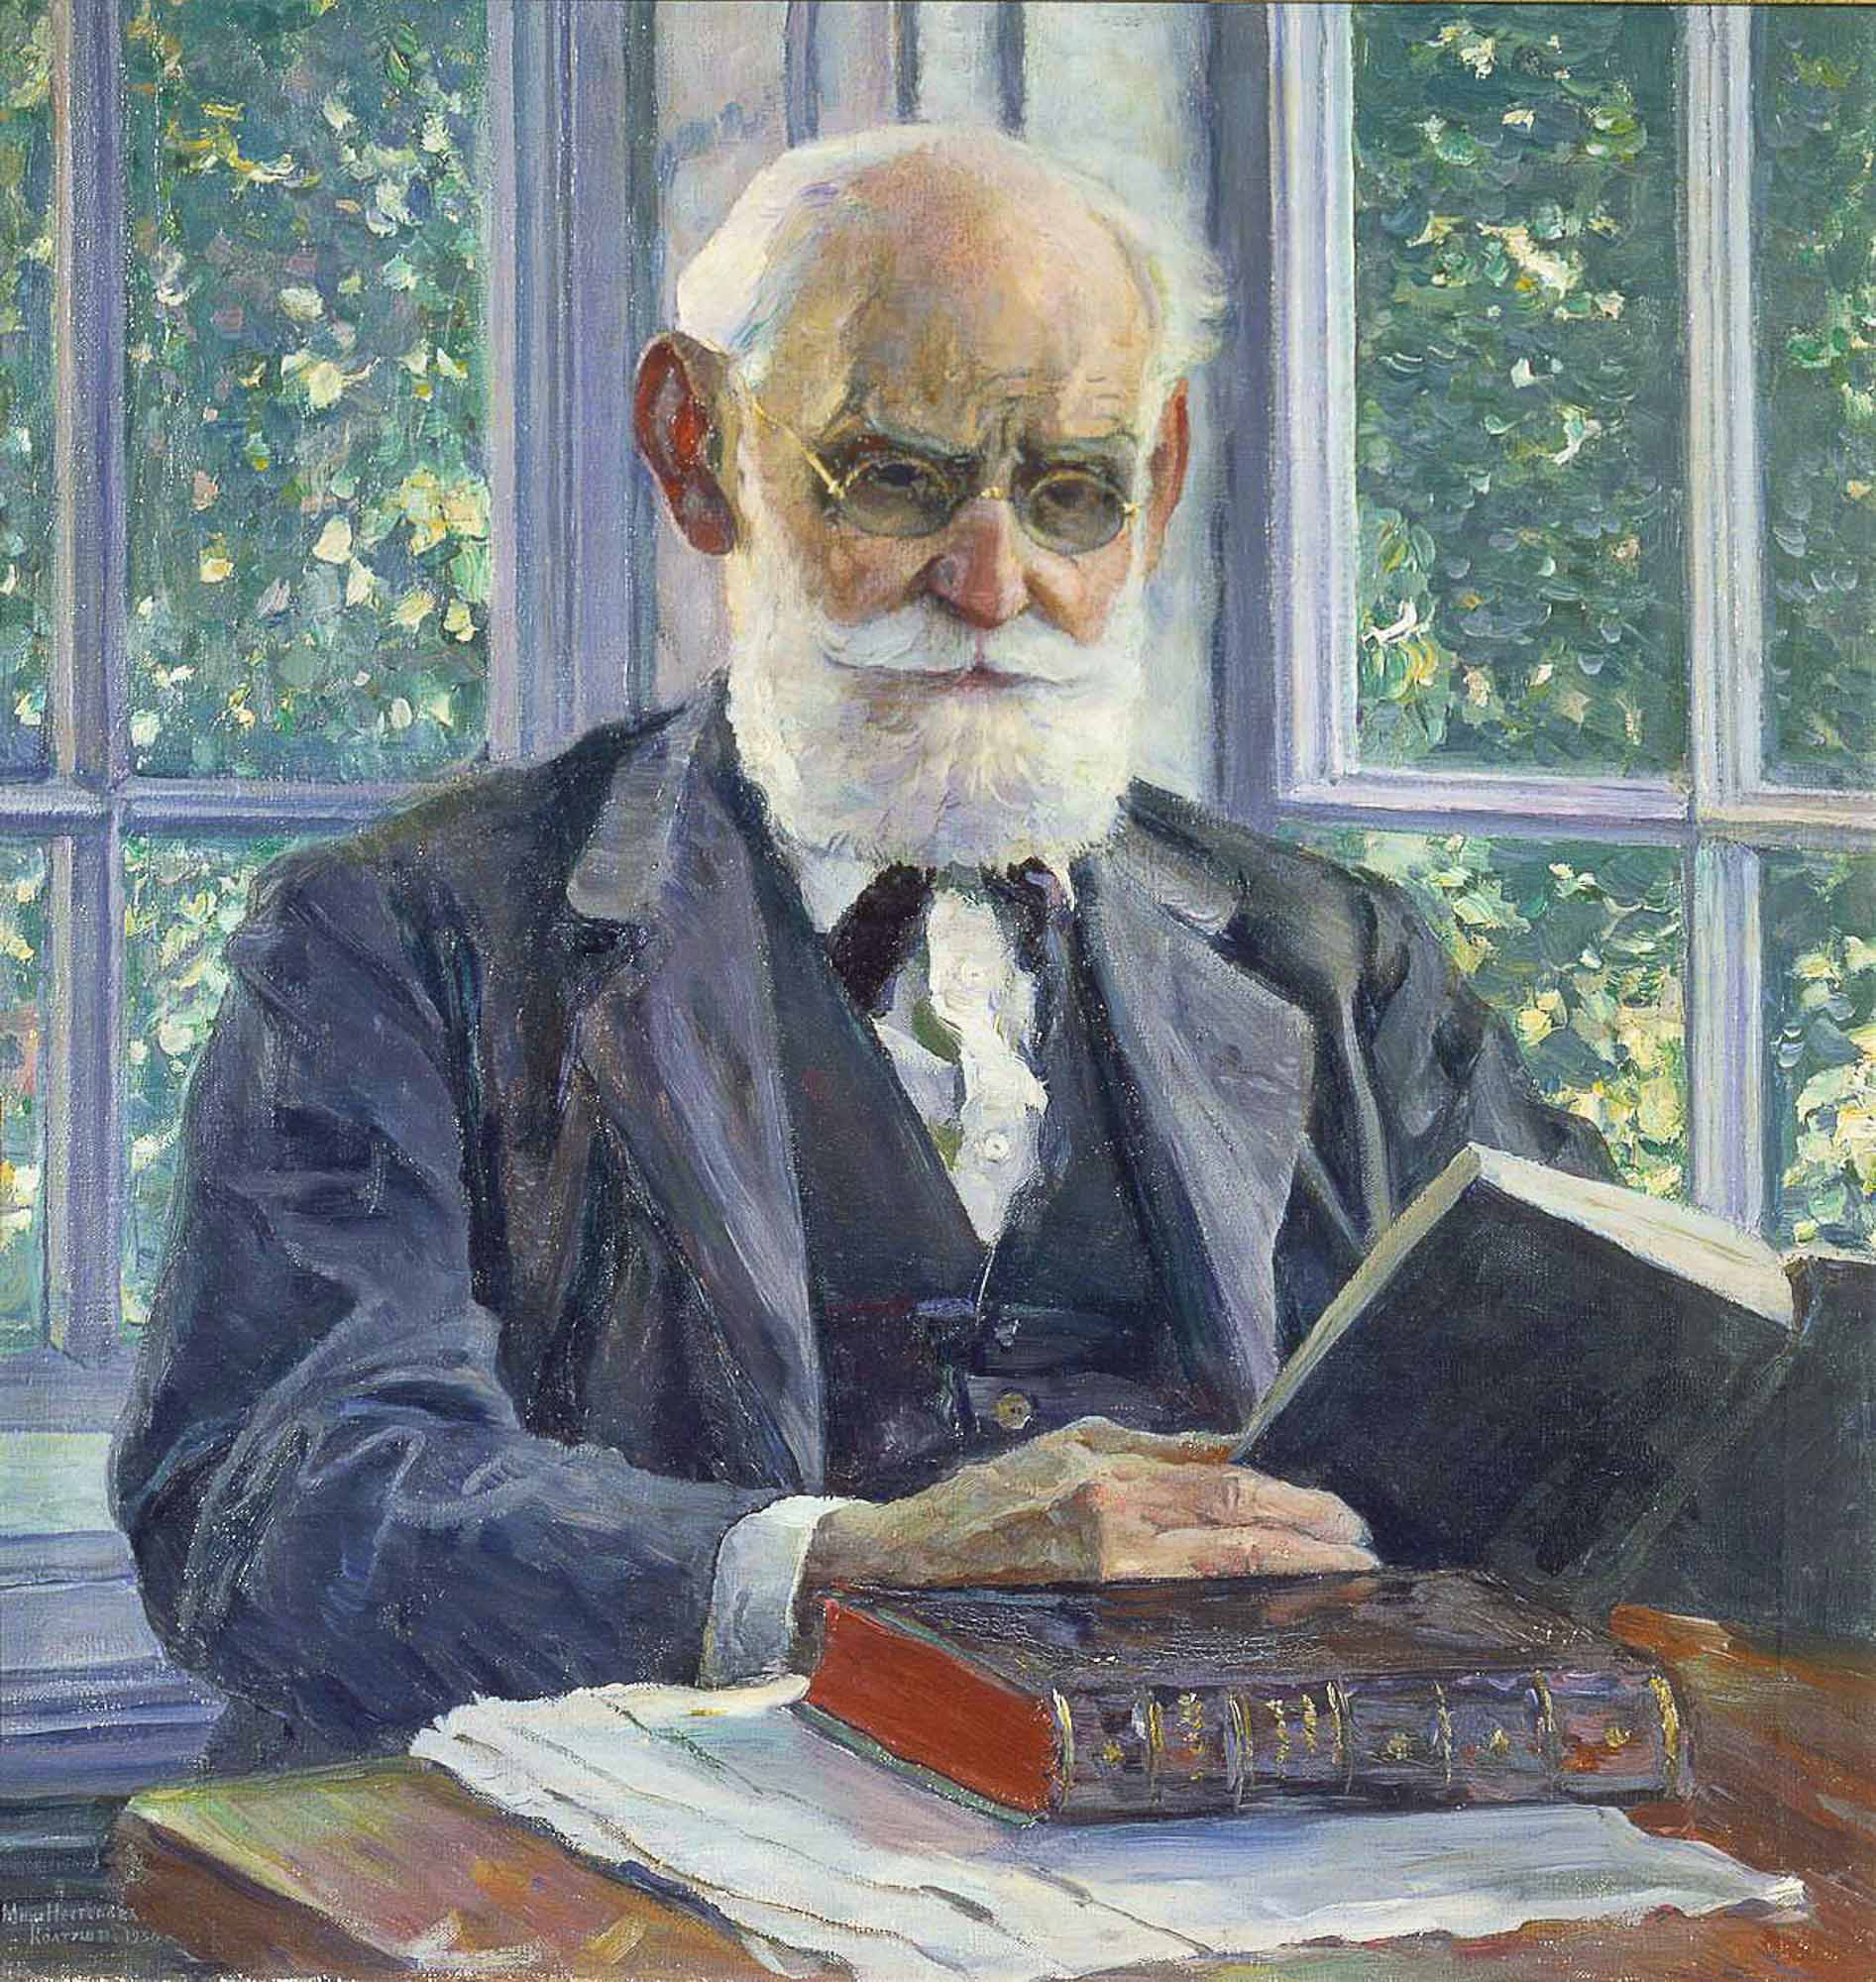 Russian Scientist Ivan Pavlov The Steward Of Physiology To Discover Russia